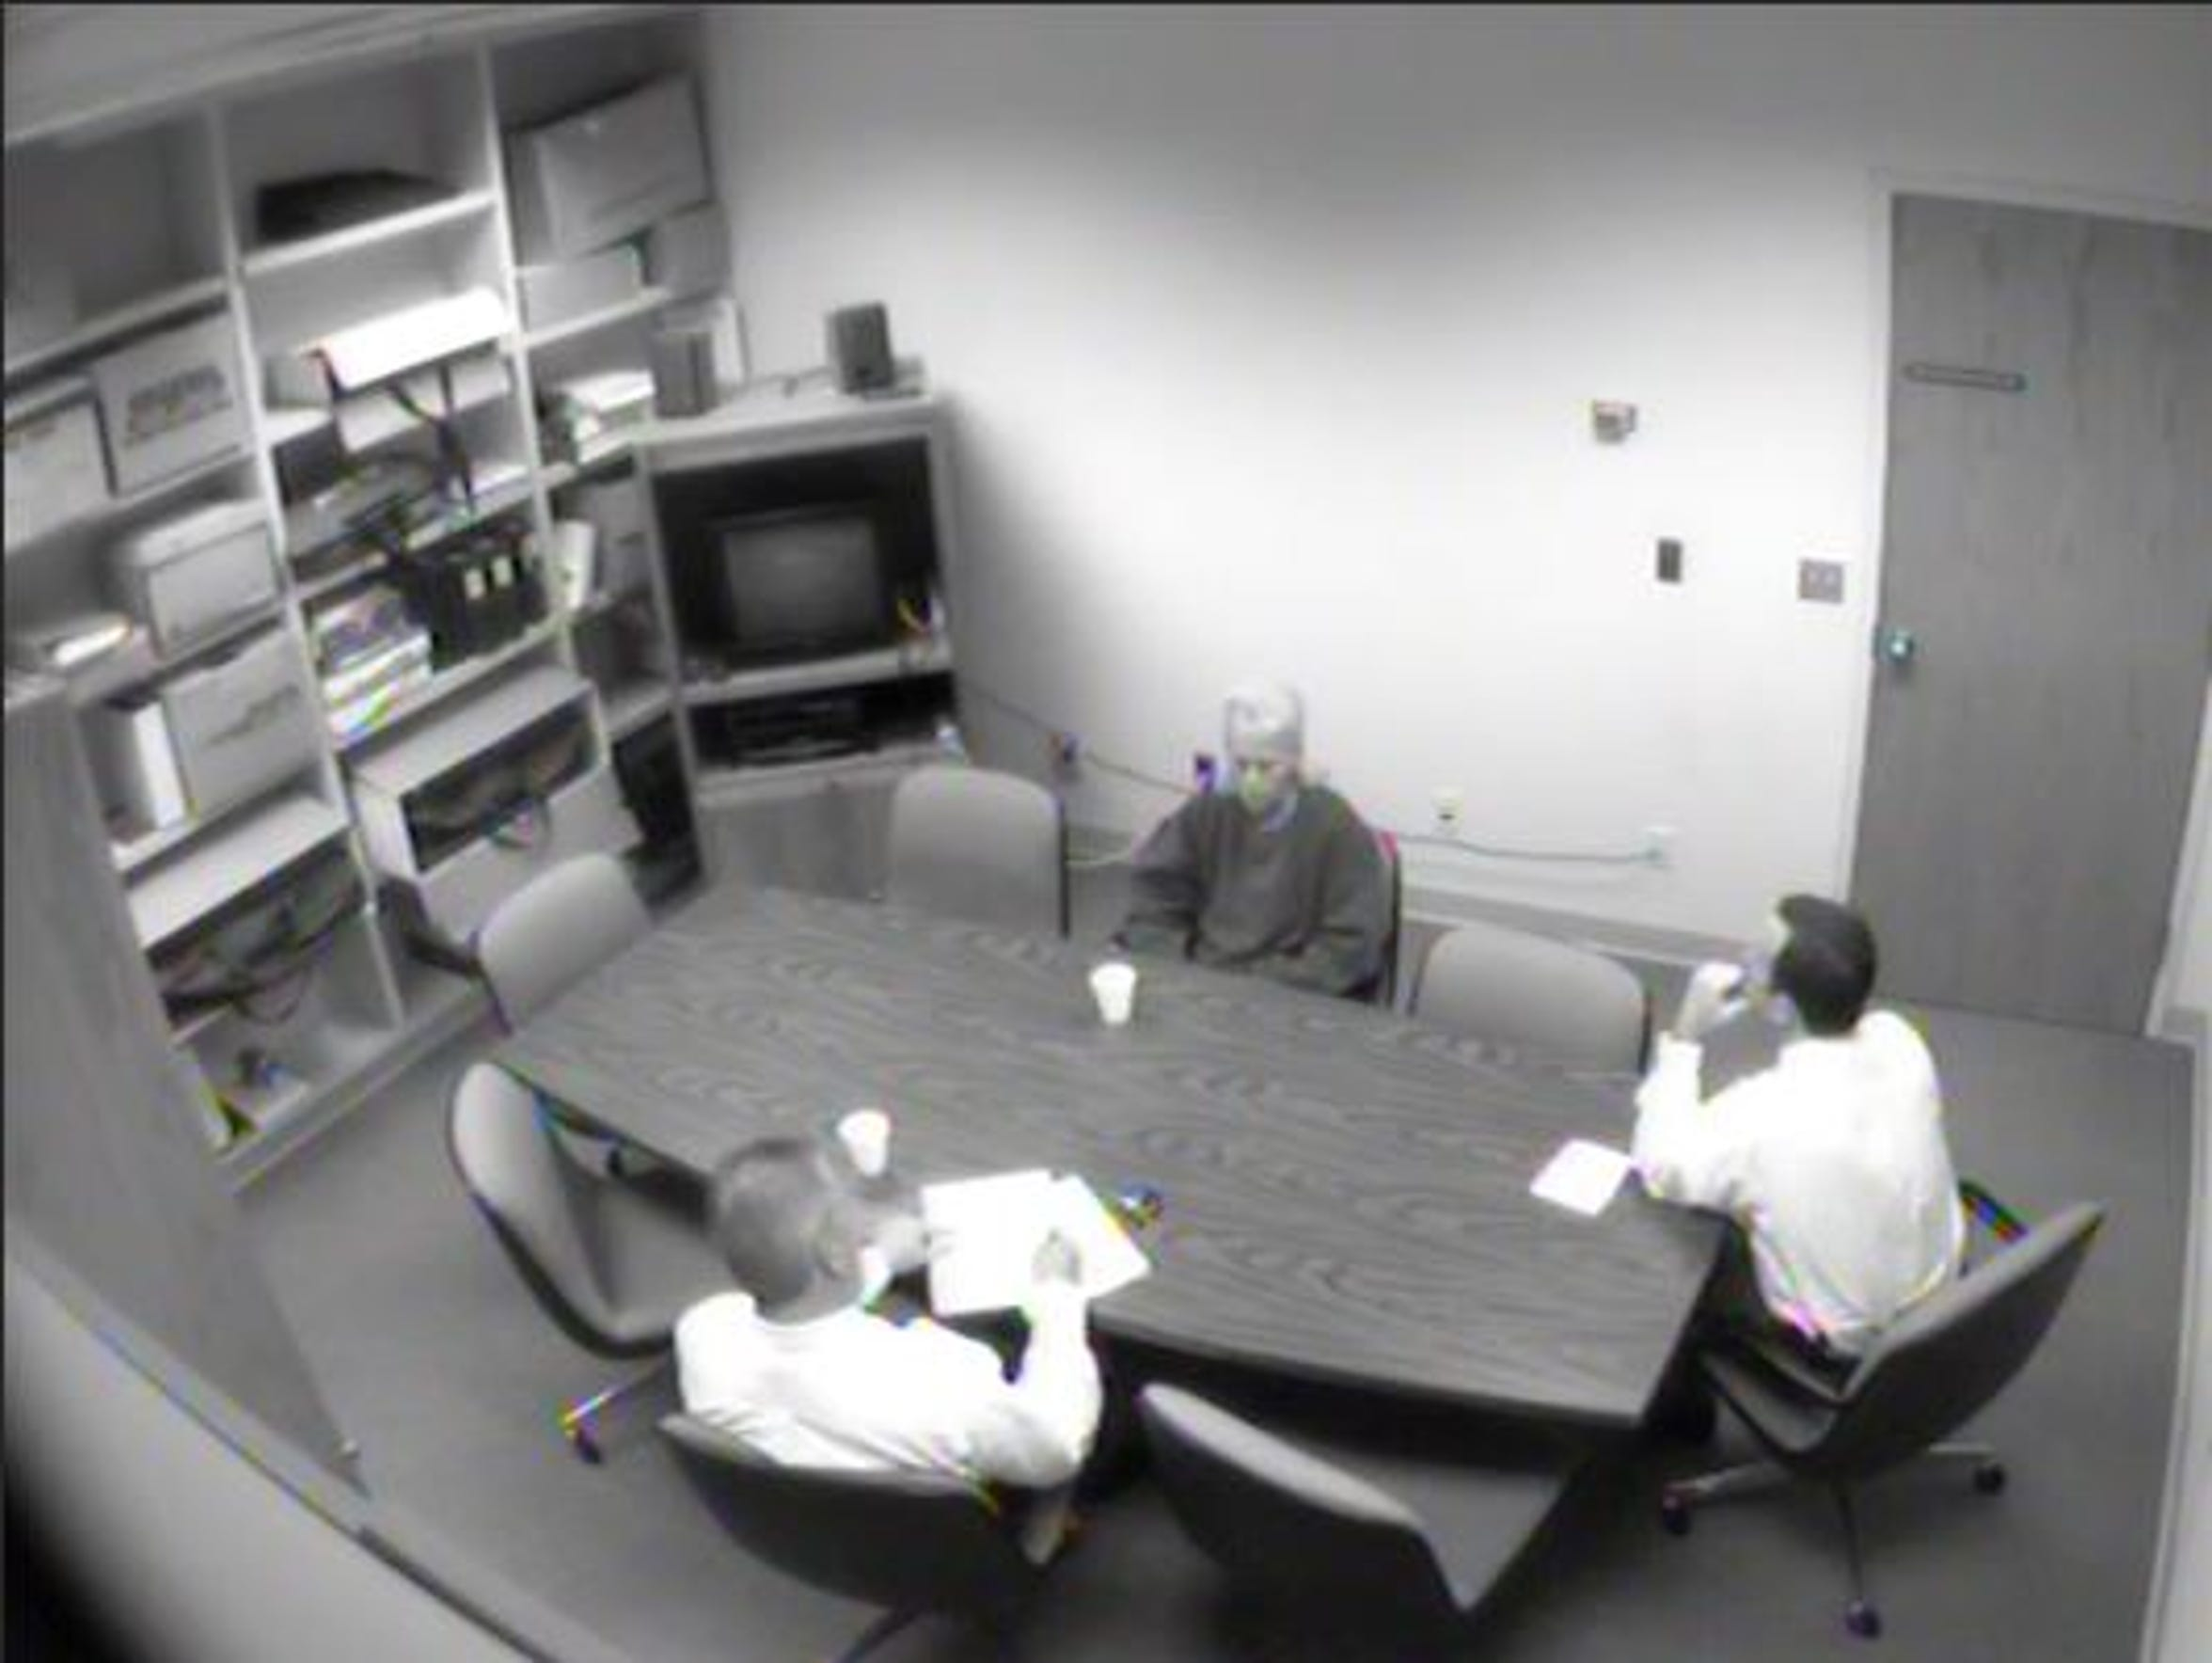 Dianna Siveny is interviewed by officers during the